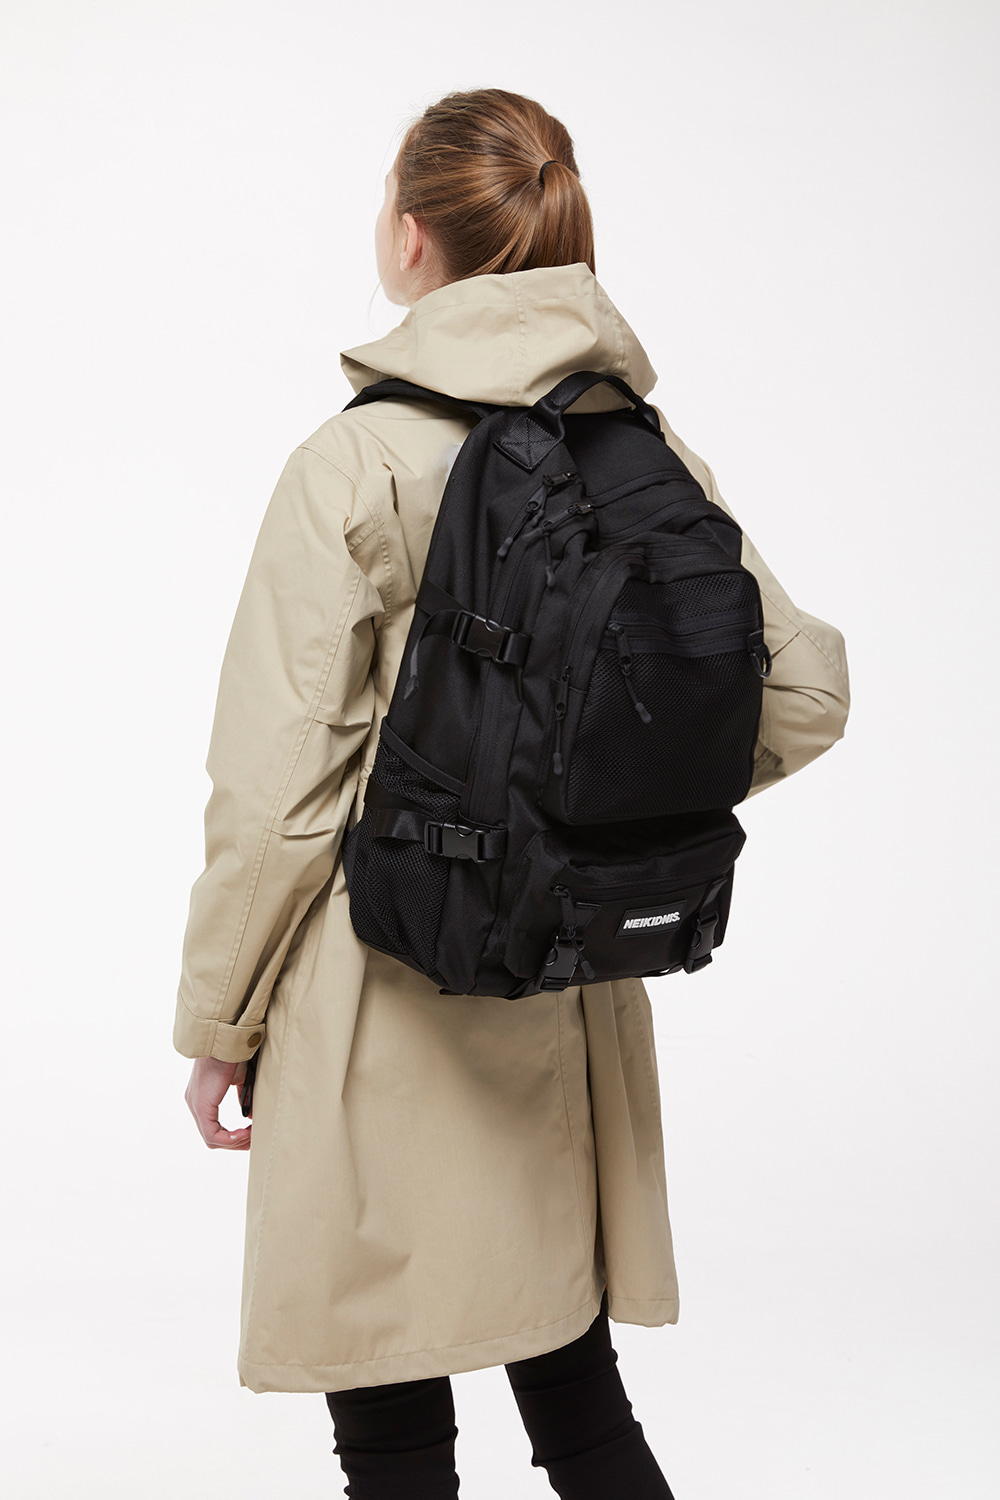 네이키드니스(NEIKIDNIS) PREMIER BACKPACK / BLACK